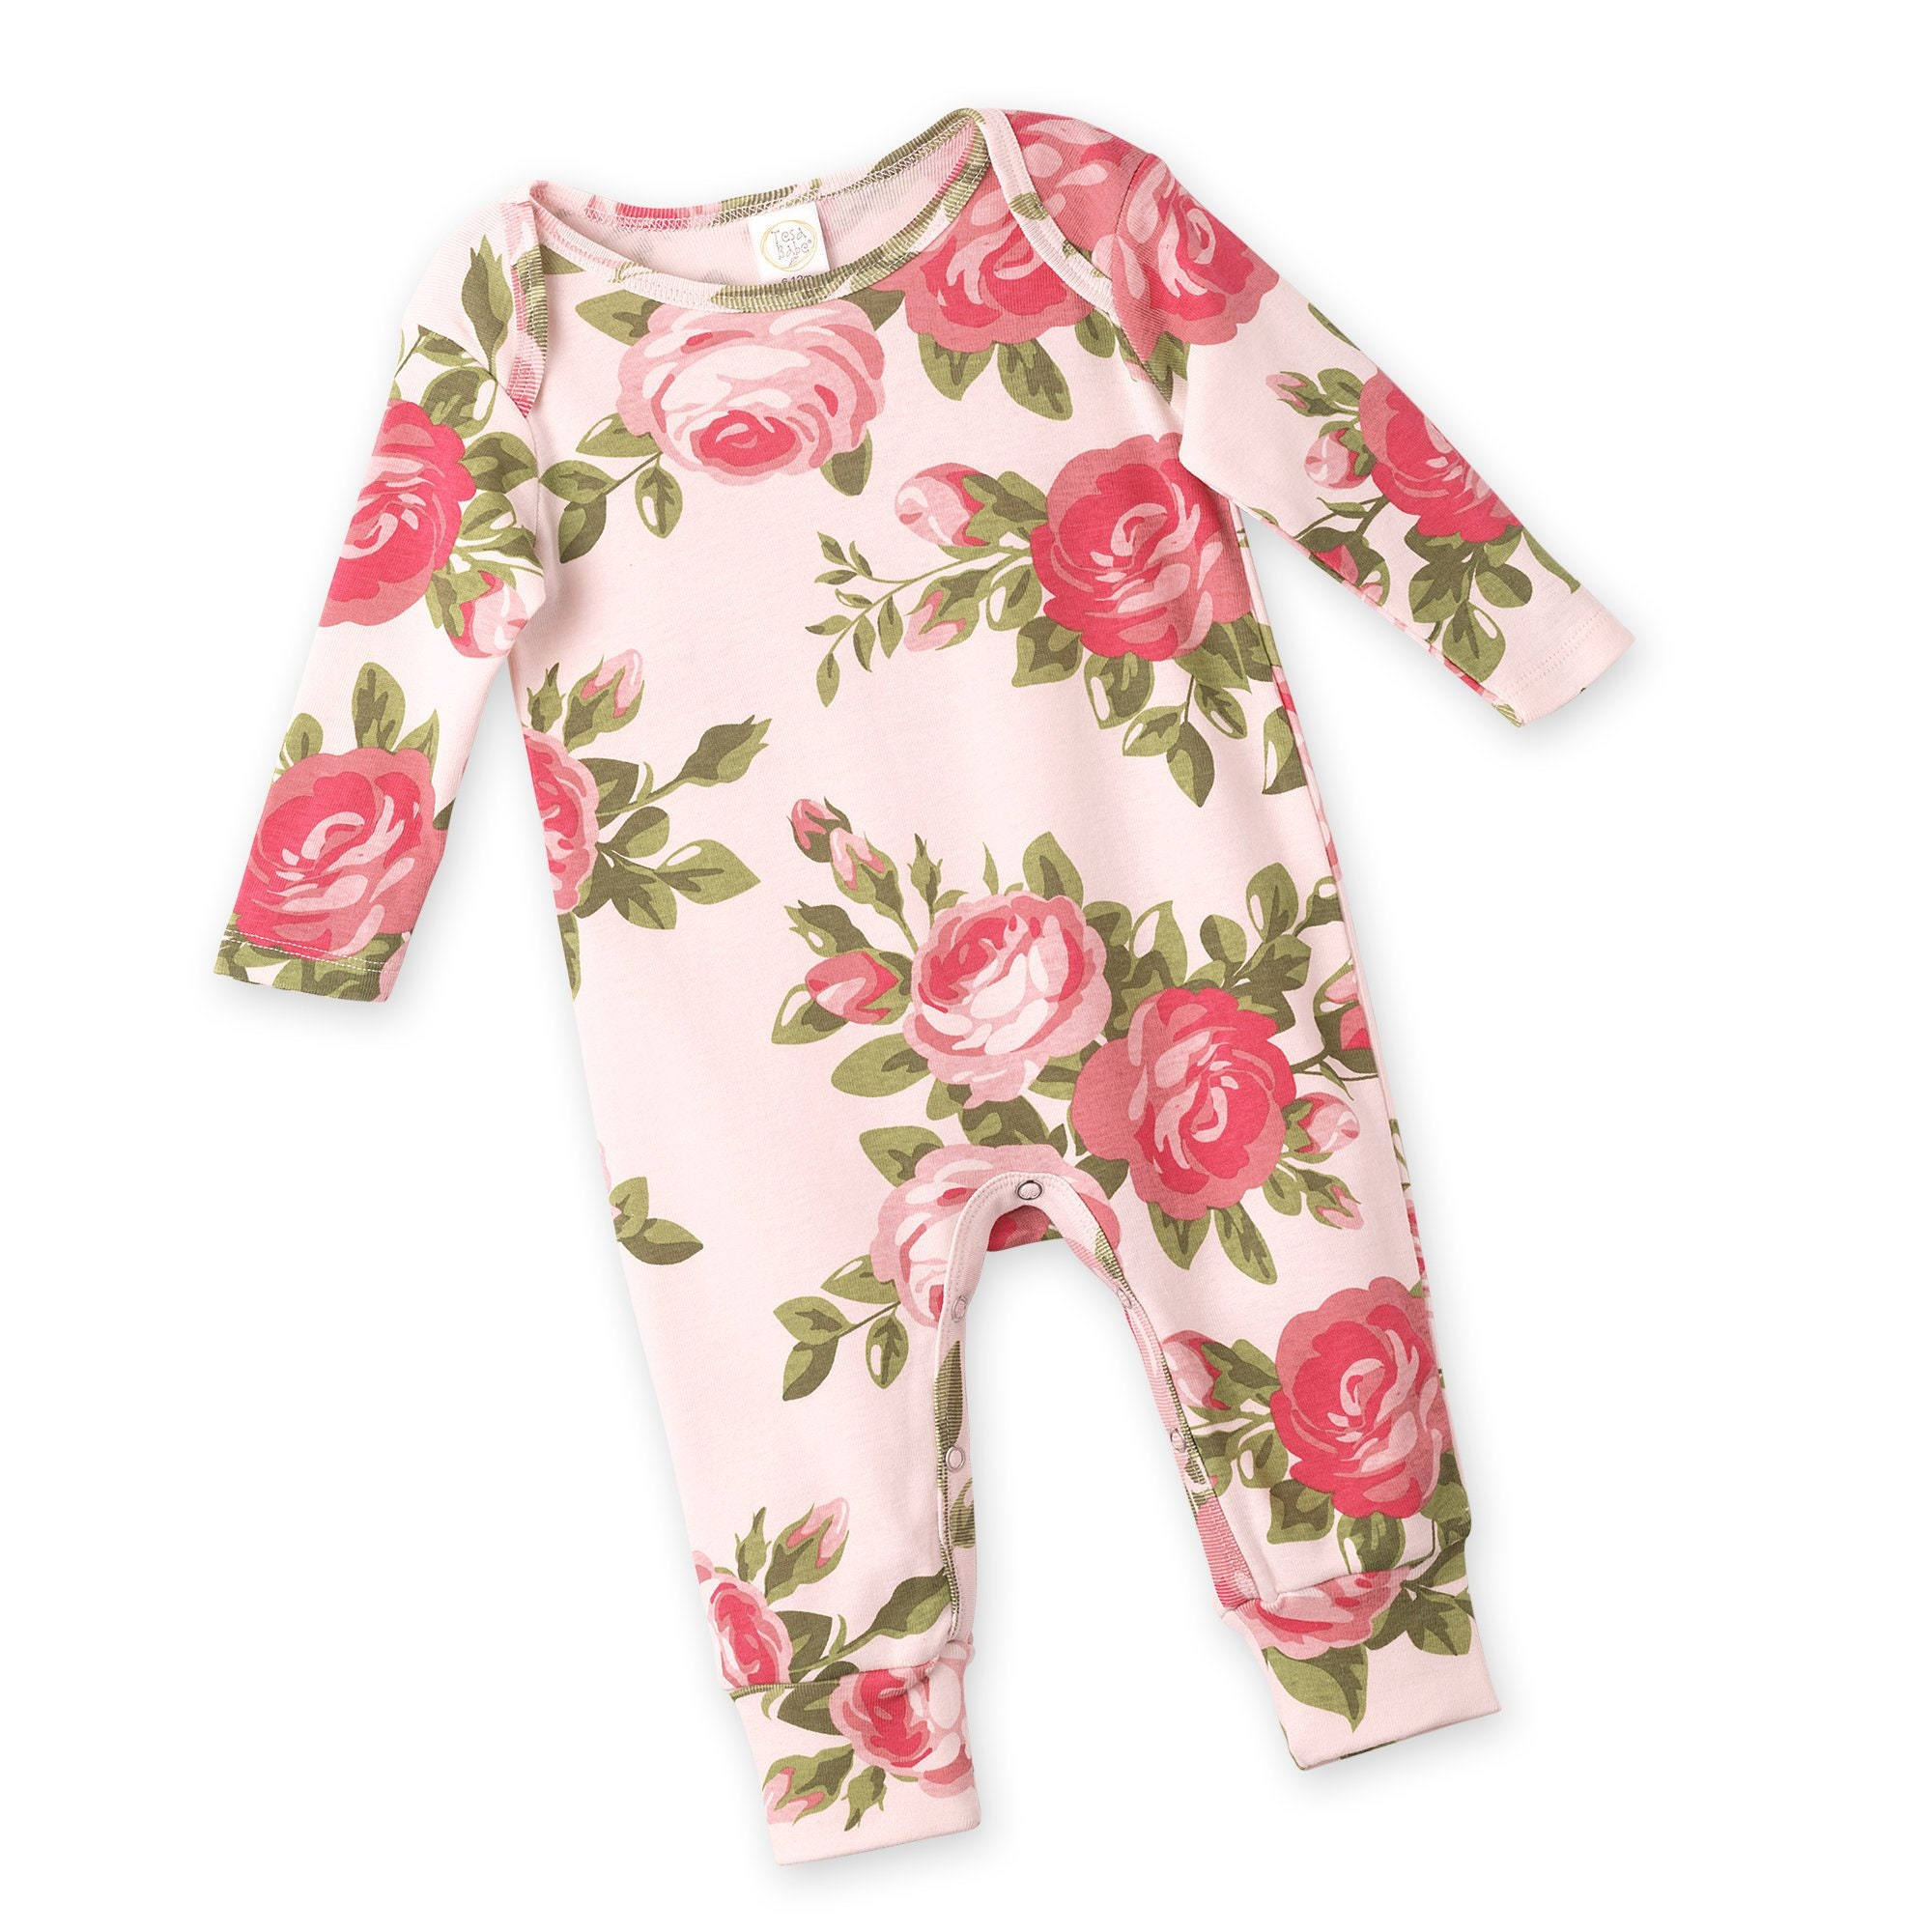 8686def4fed Newborn Baby Girl Coming Home Outfit